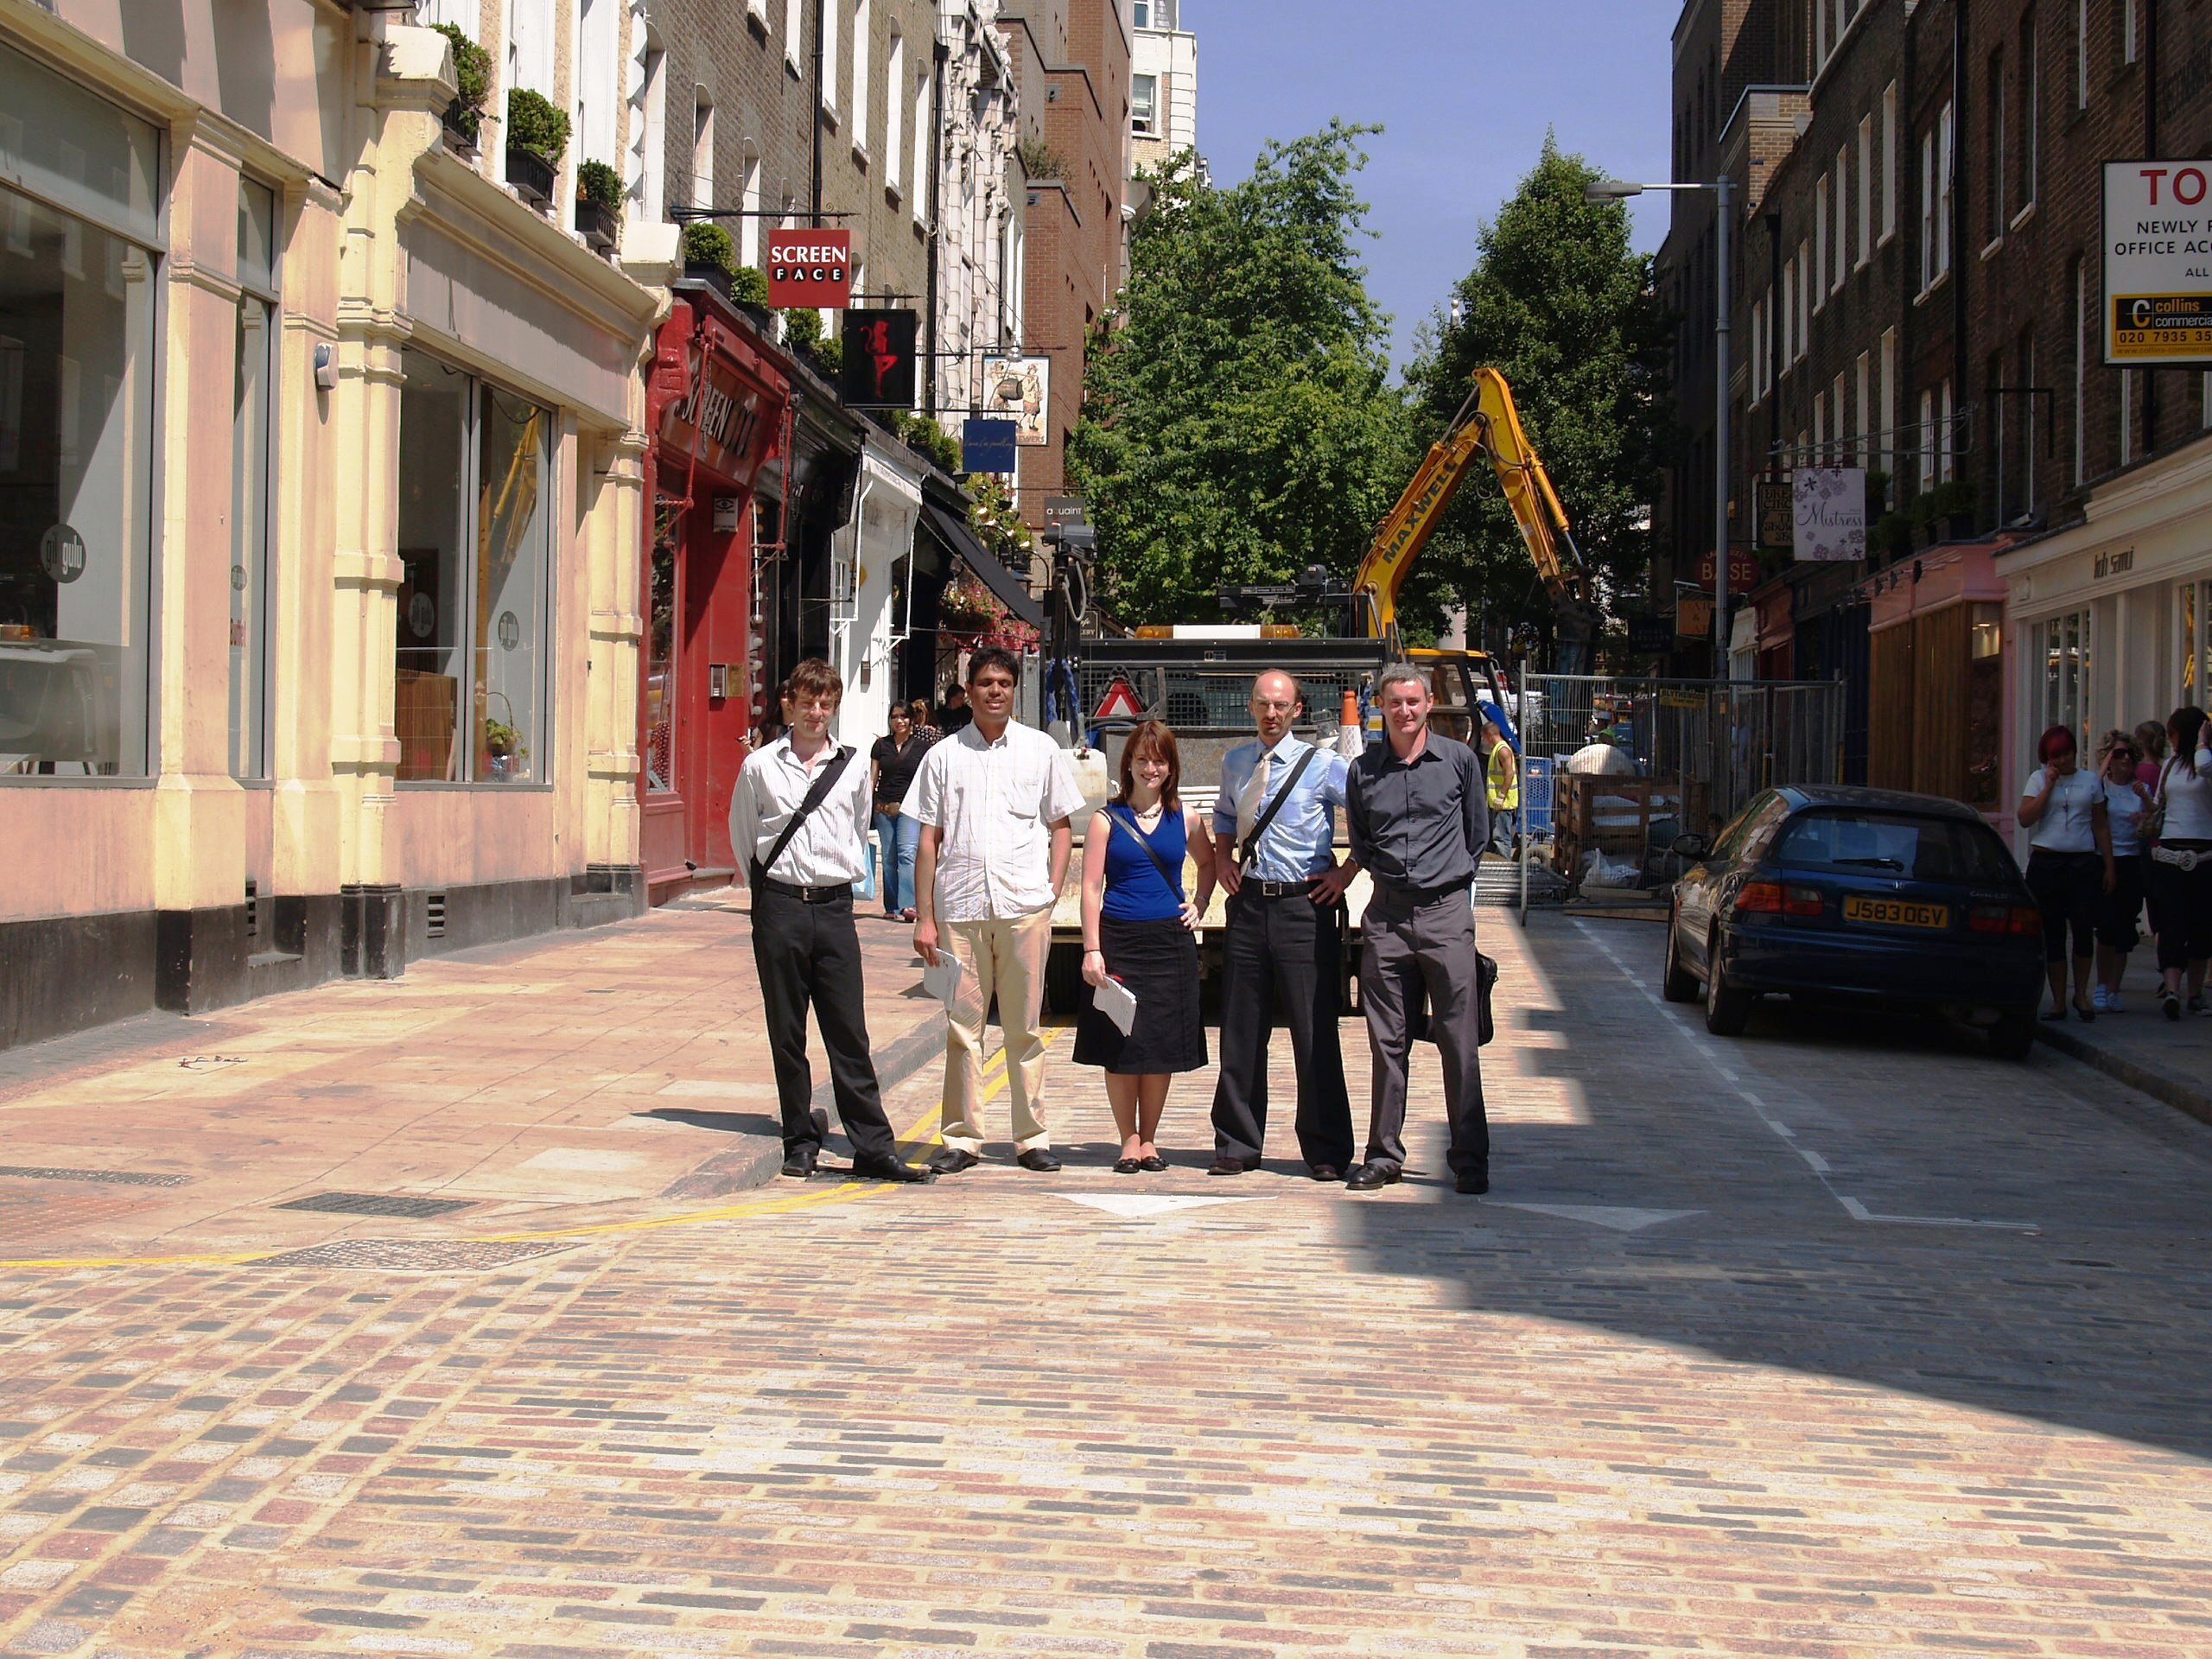 Camden's Team: David Jenkins, engineer; Wajid Majid, engineer; Liz Halstead, principal transport planner; Tim Long, transport planner; and David Reidy, Trust's link officer.